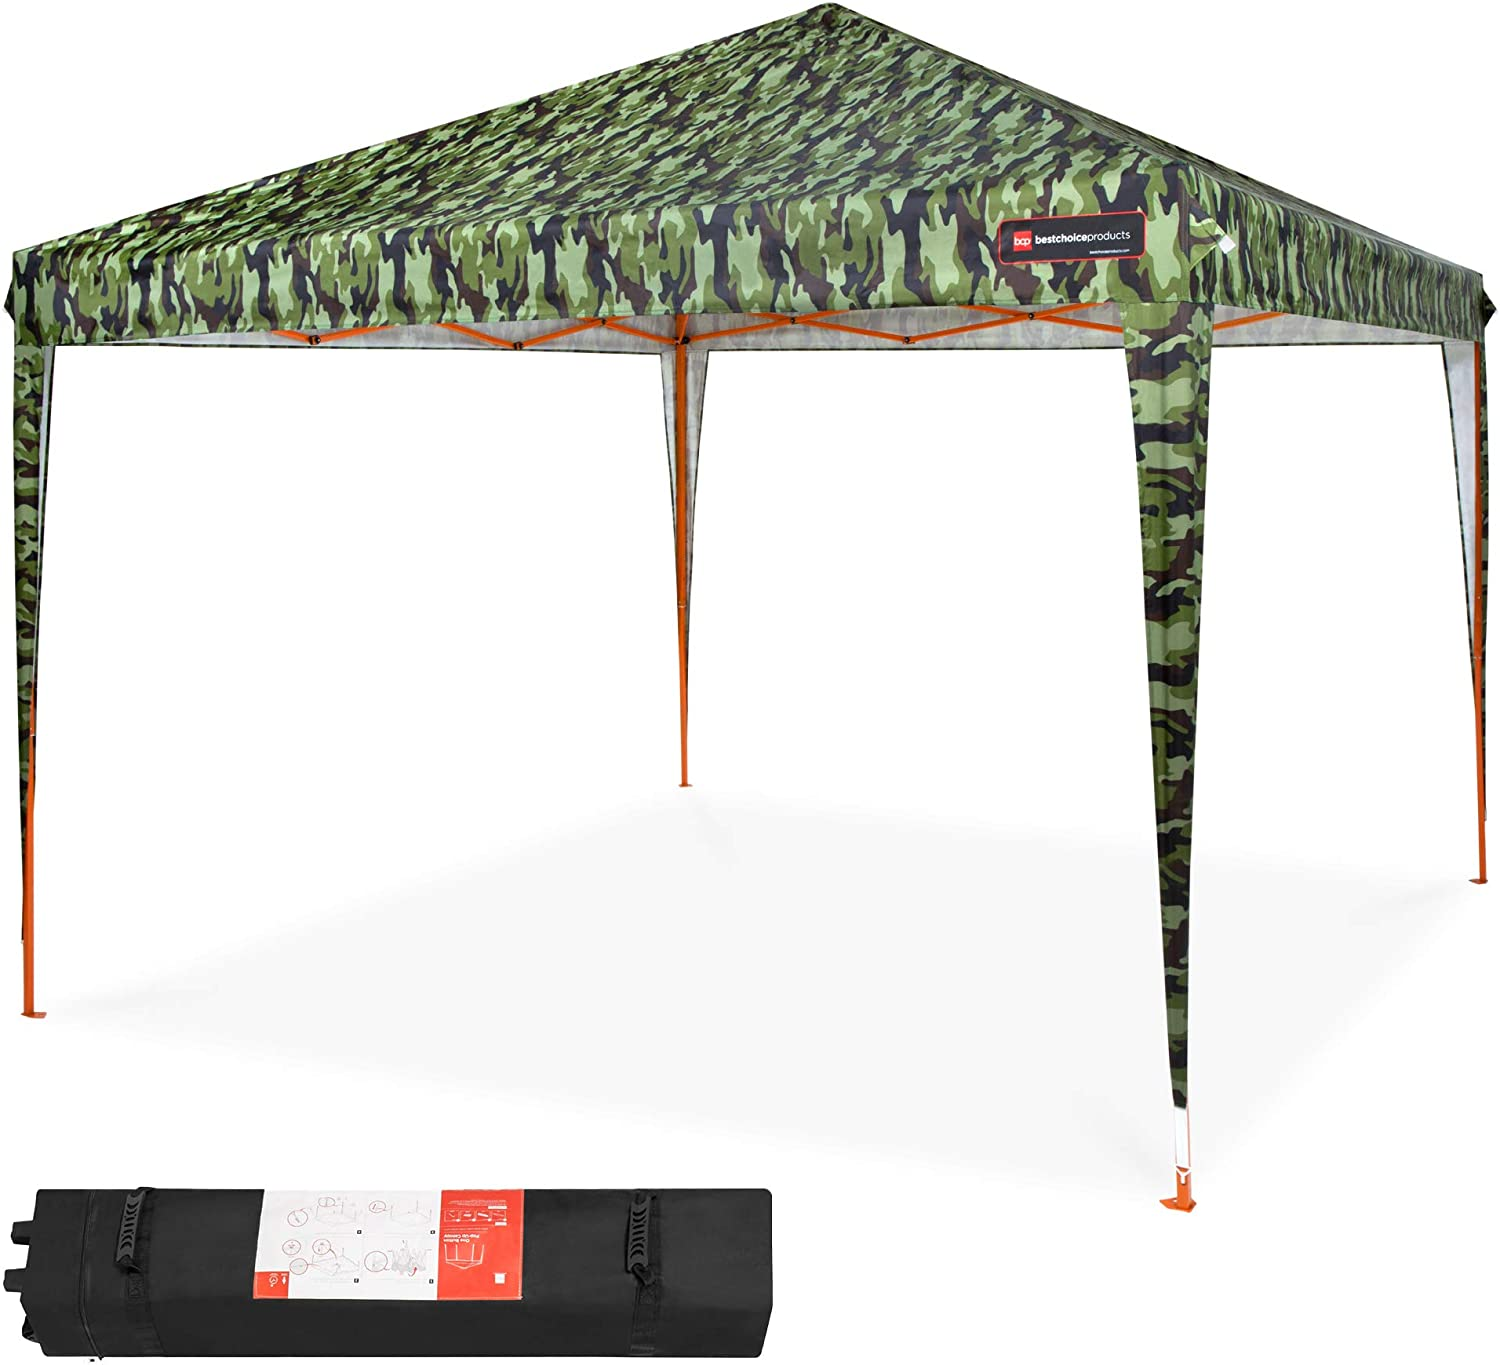 Best Choice Products 10x10ft Outdoor Portable Lightweight Folding Instant Pop Up Gazebo Canopy Shade Tent w/Adjustable Height, Wind Vent, Carrying Bag - Camo